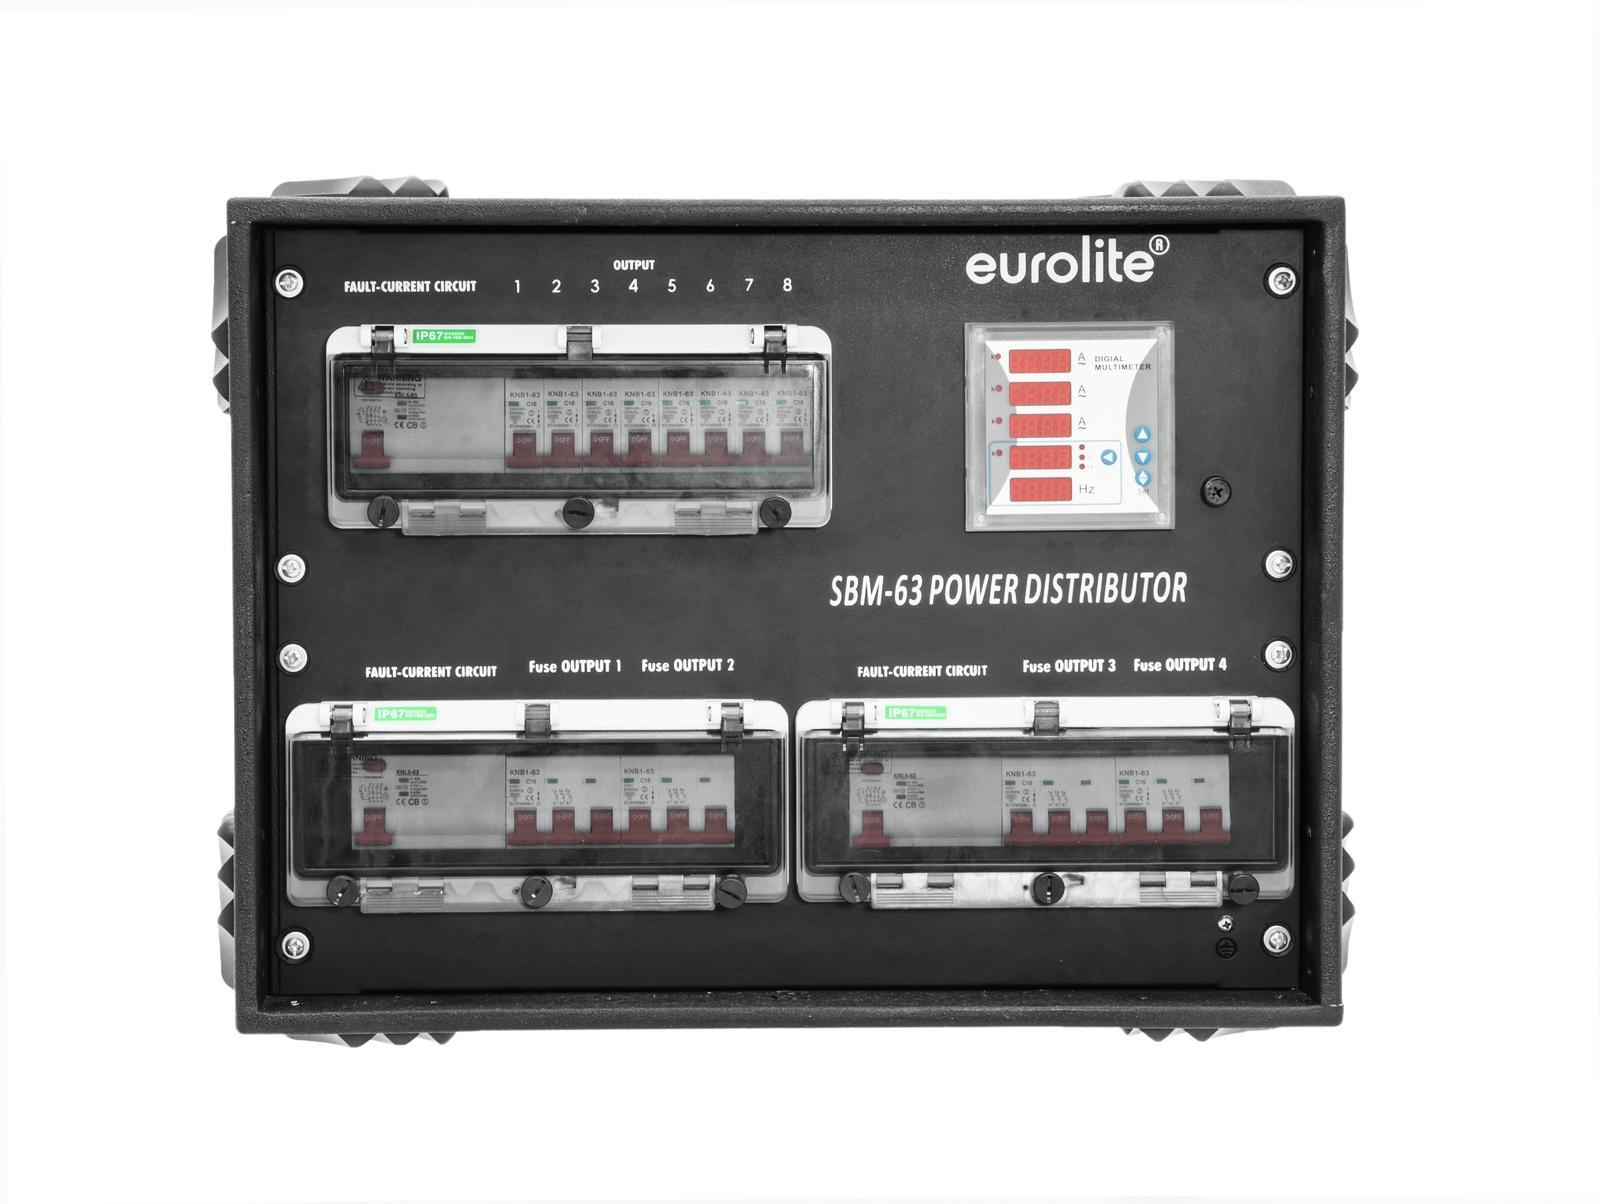 Power distributor rack 63A CEE EUROLITE SBM-63